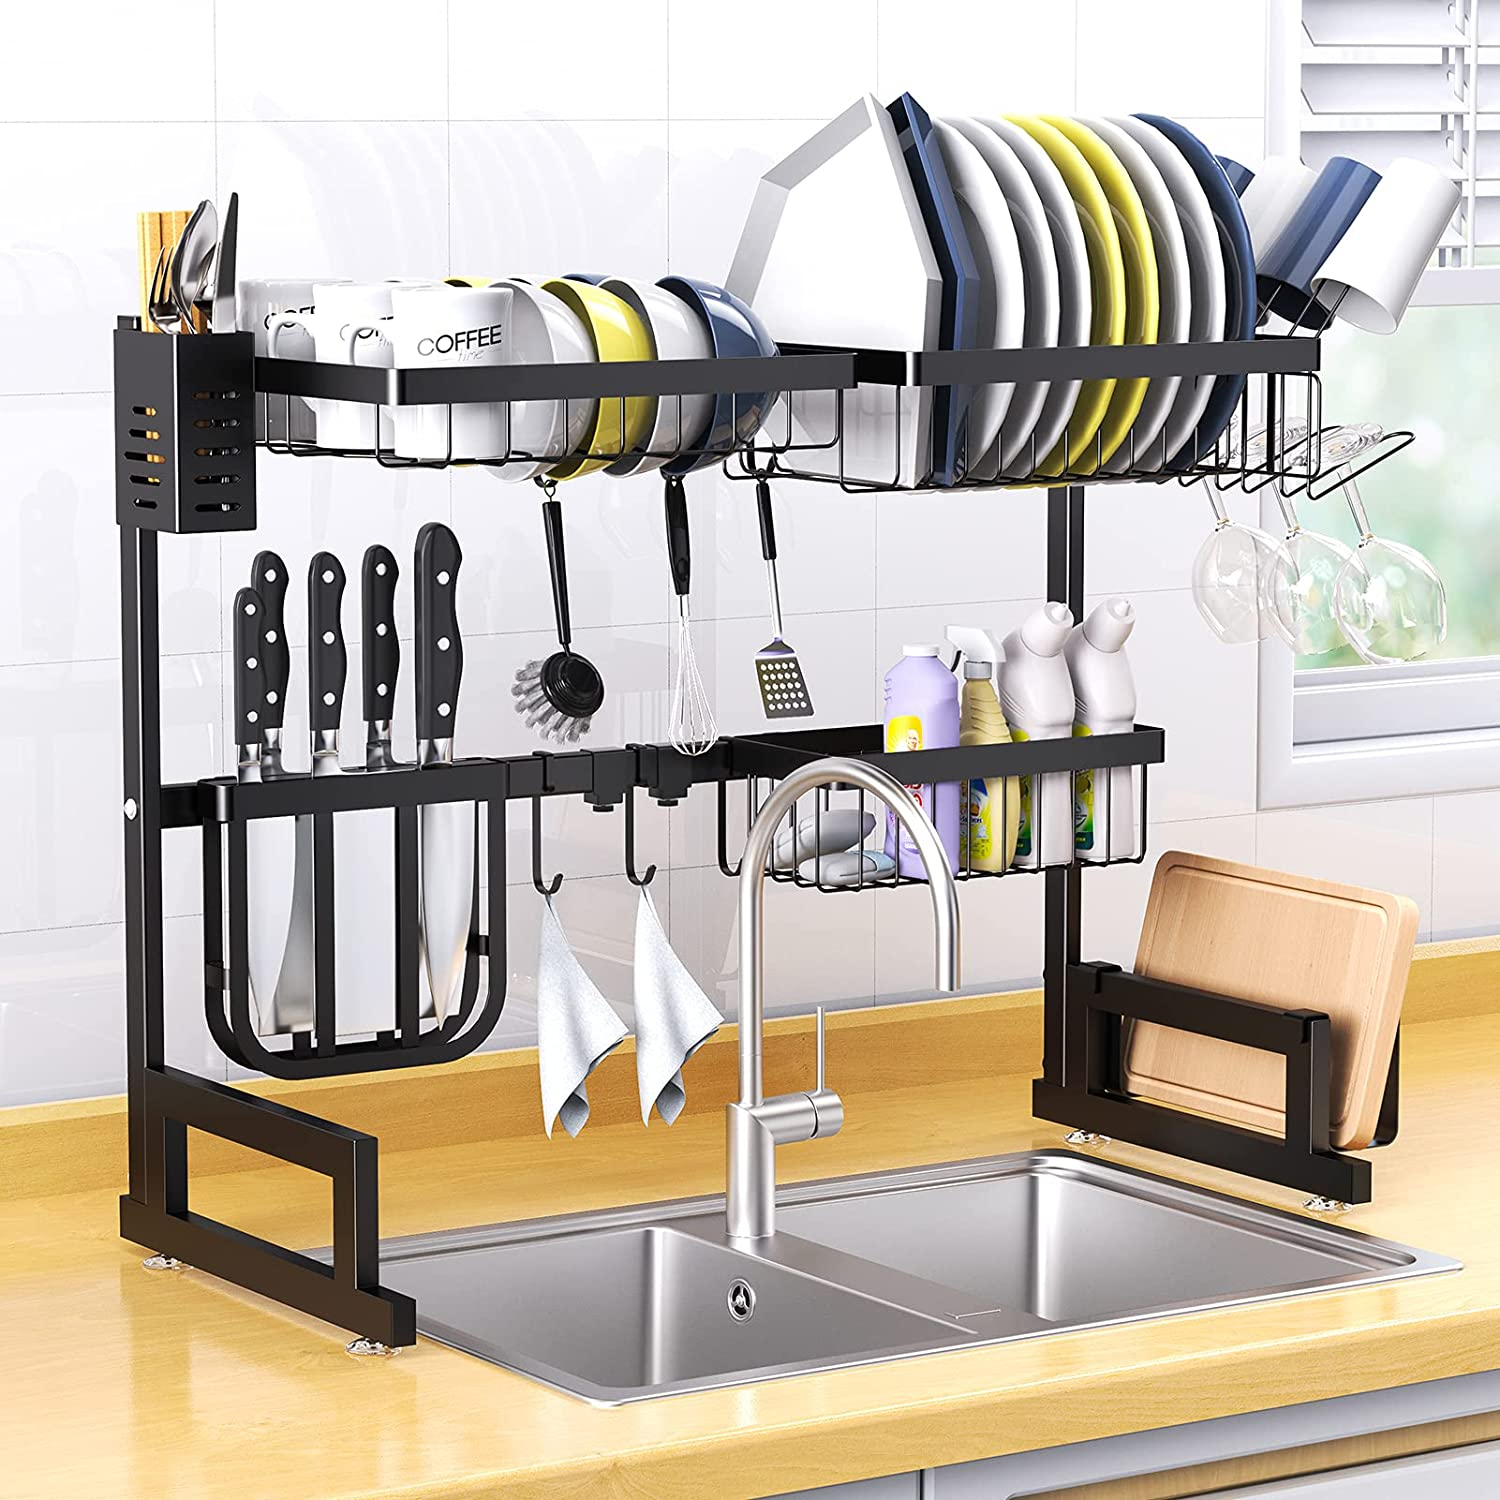 Dish Drying Rack Over Sink, Basstop Length Adjustable (25.6''=Sink Size=''33.5) Stainless Steel Above Sink Dish Rack Drainer Shelf with 2 Tier 6 Hook for Kitchen Counter Space Saving-Matte Black